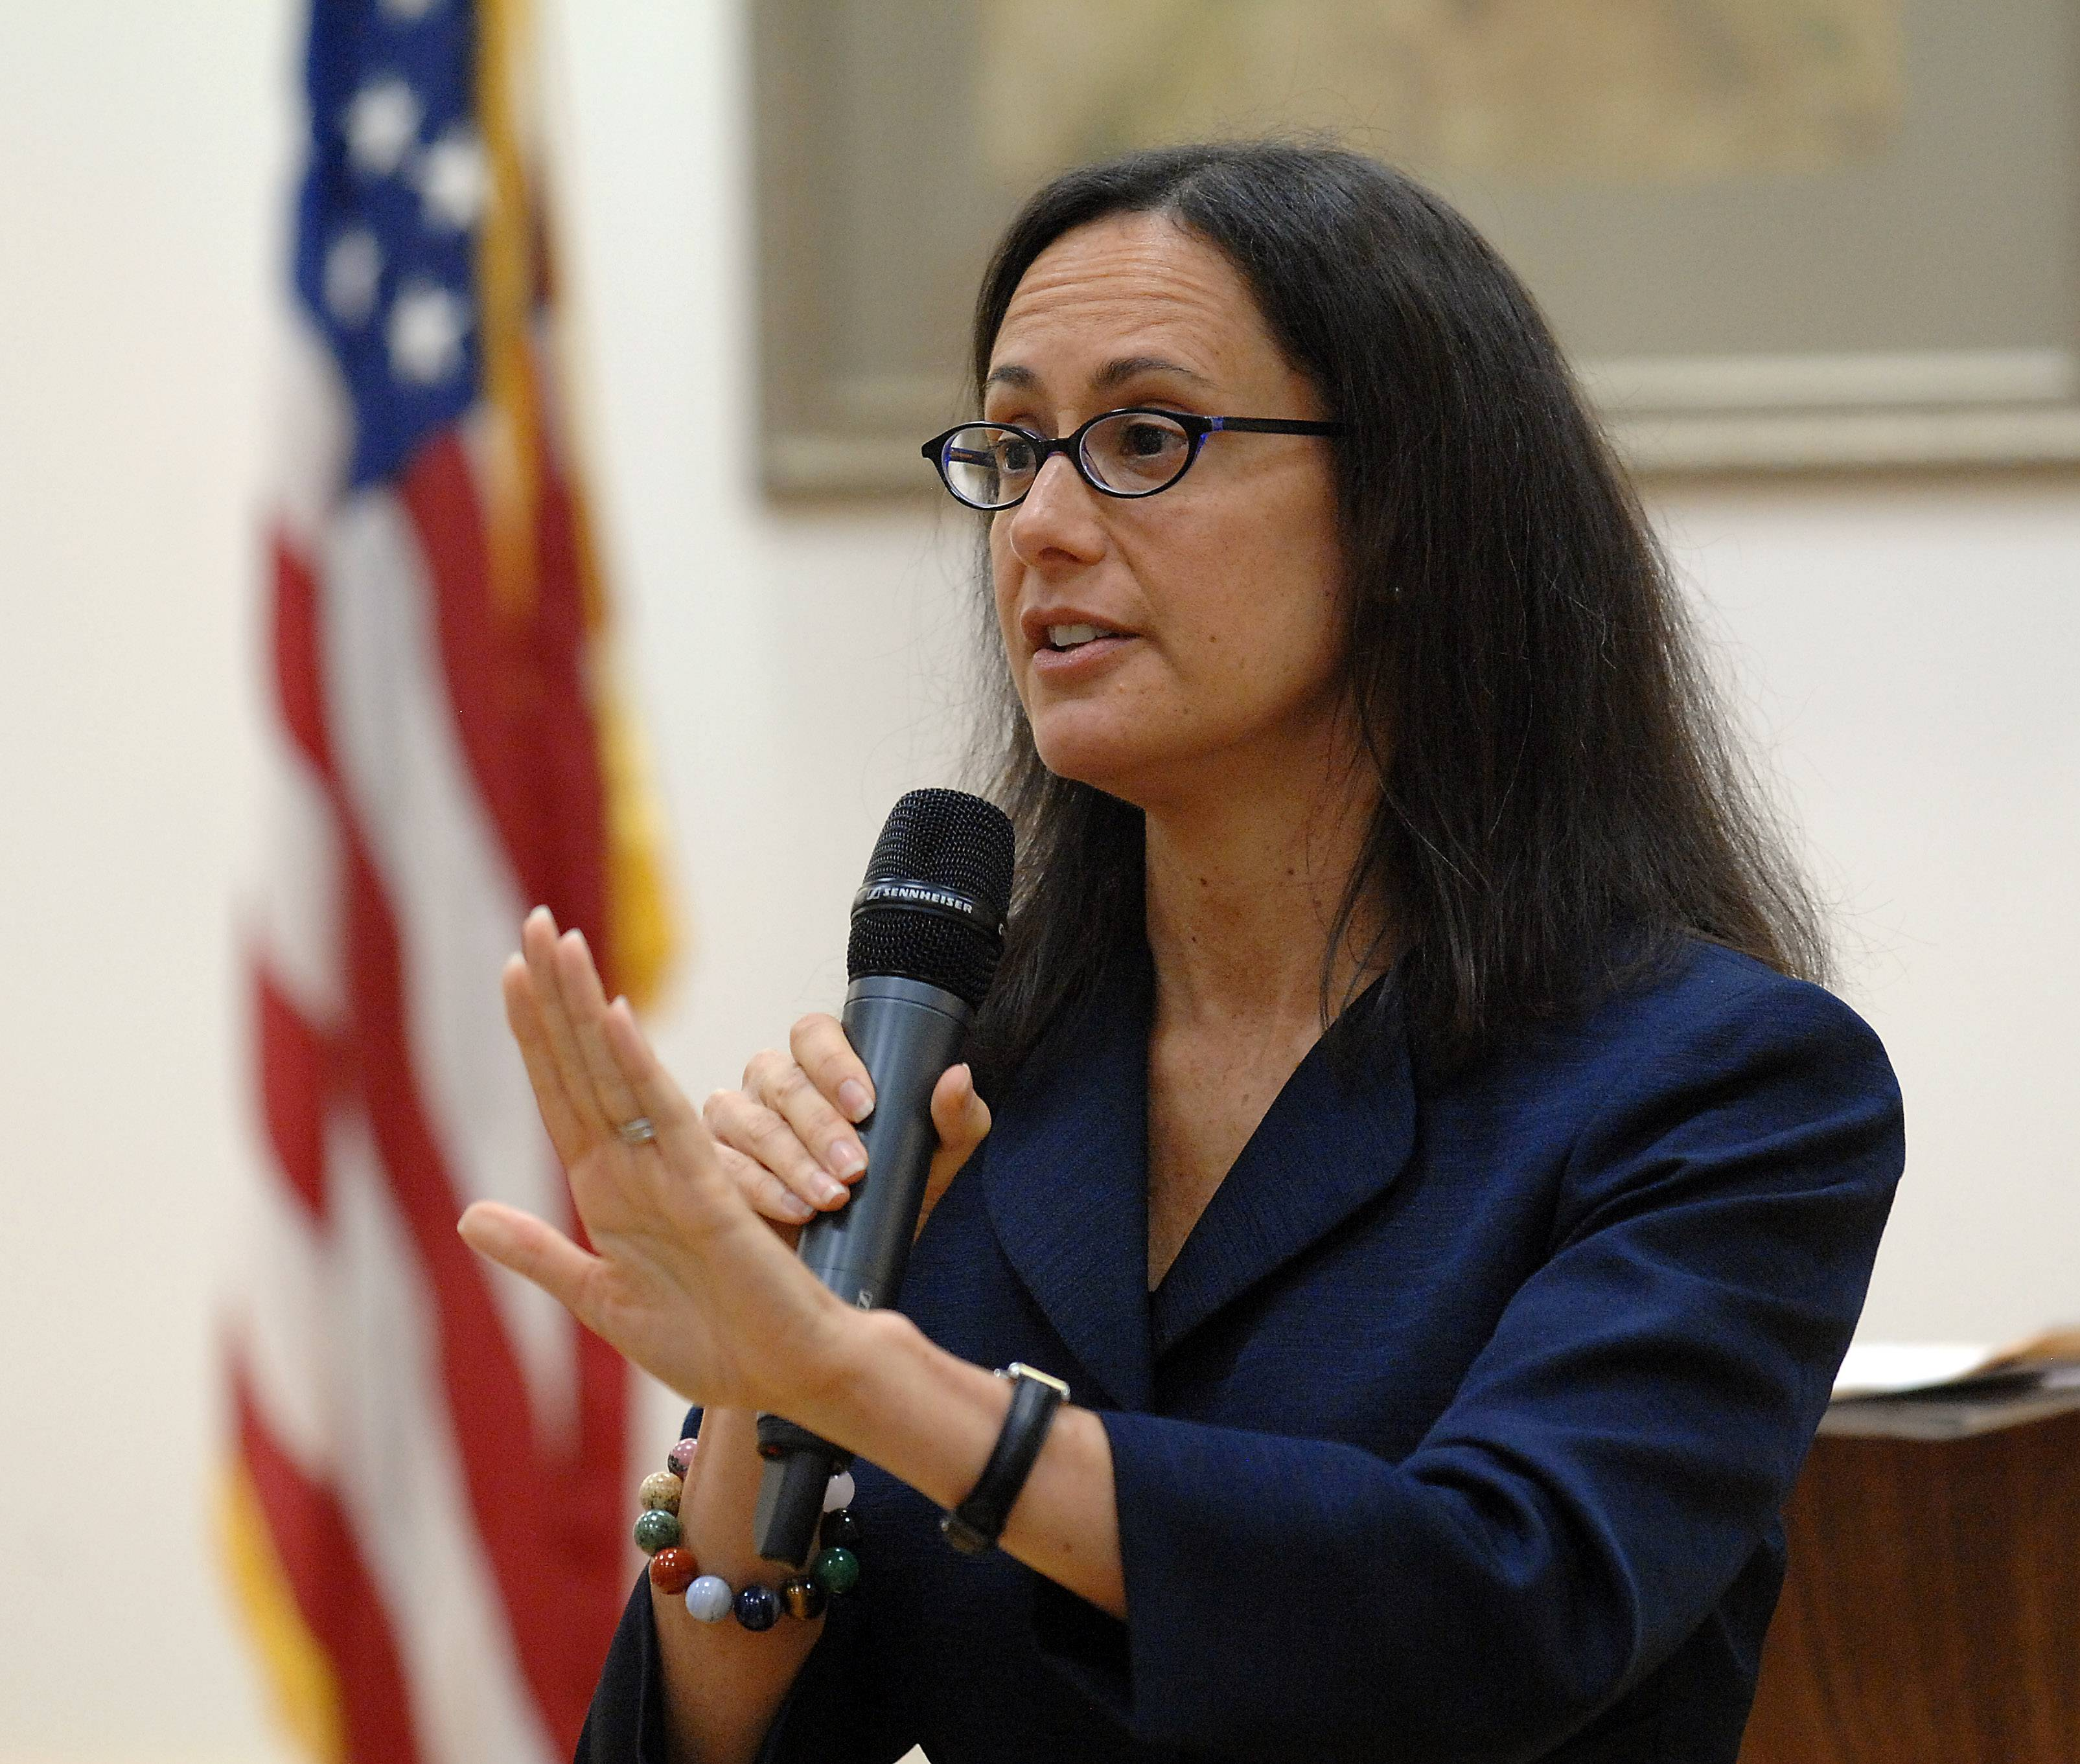 Illinois Attorney General Lisa Madigan says her office will side with same-sex couples who sue to get marriage licenses before June 1 and urged county clerks to begin issuing marriage licenses now.